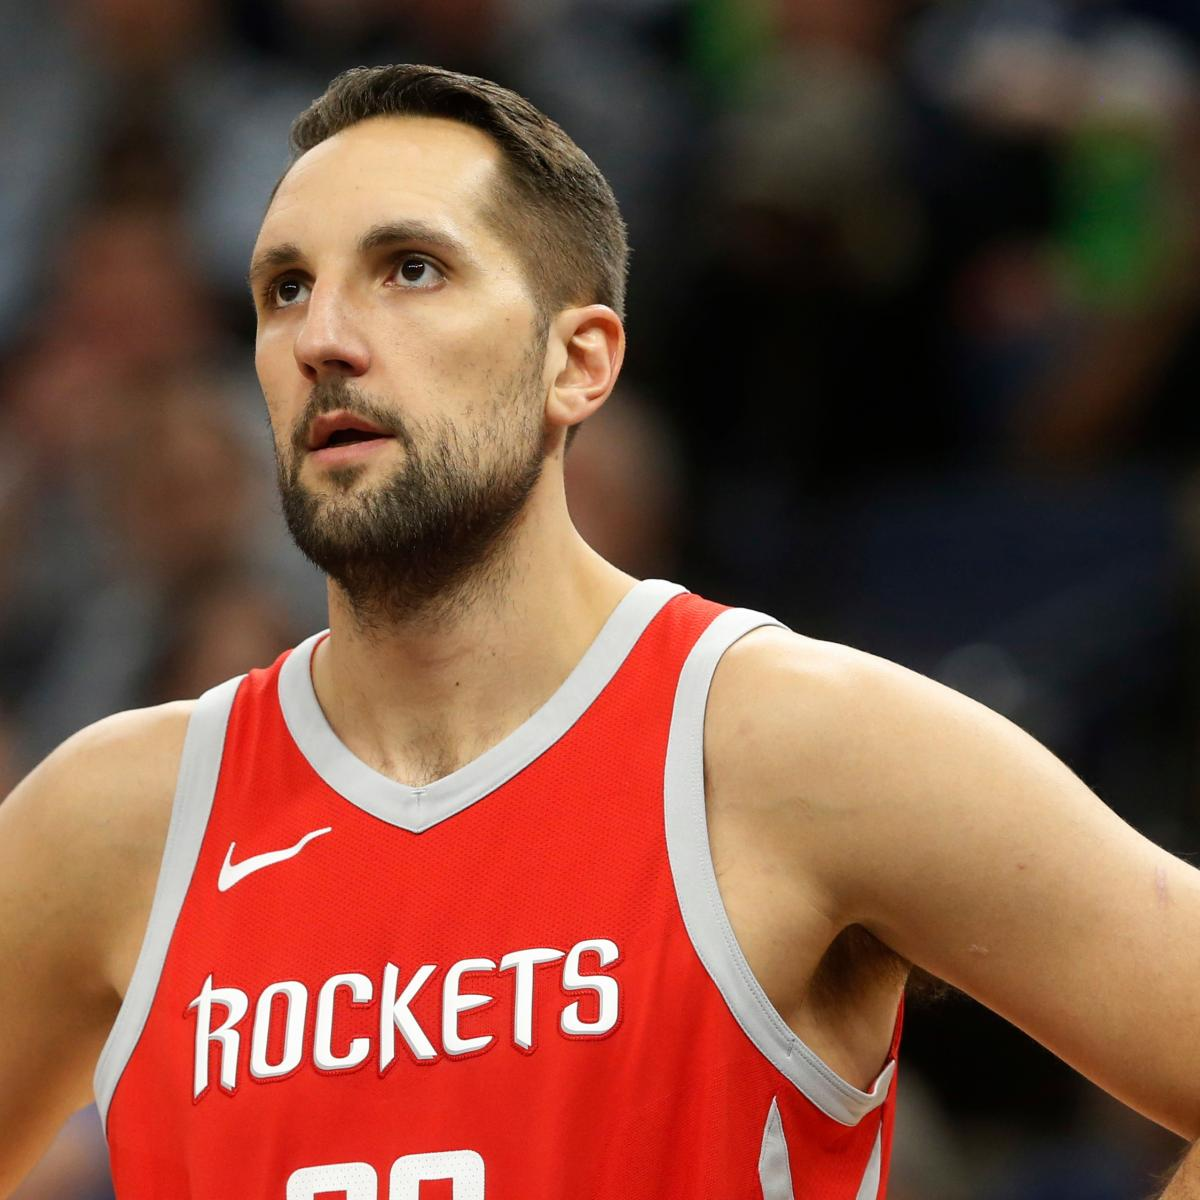 NBA Trade Rumors: Heat Not Interested in Potential Ryan Anderson Deal